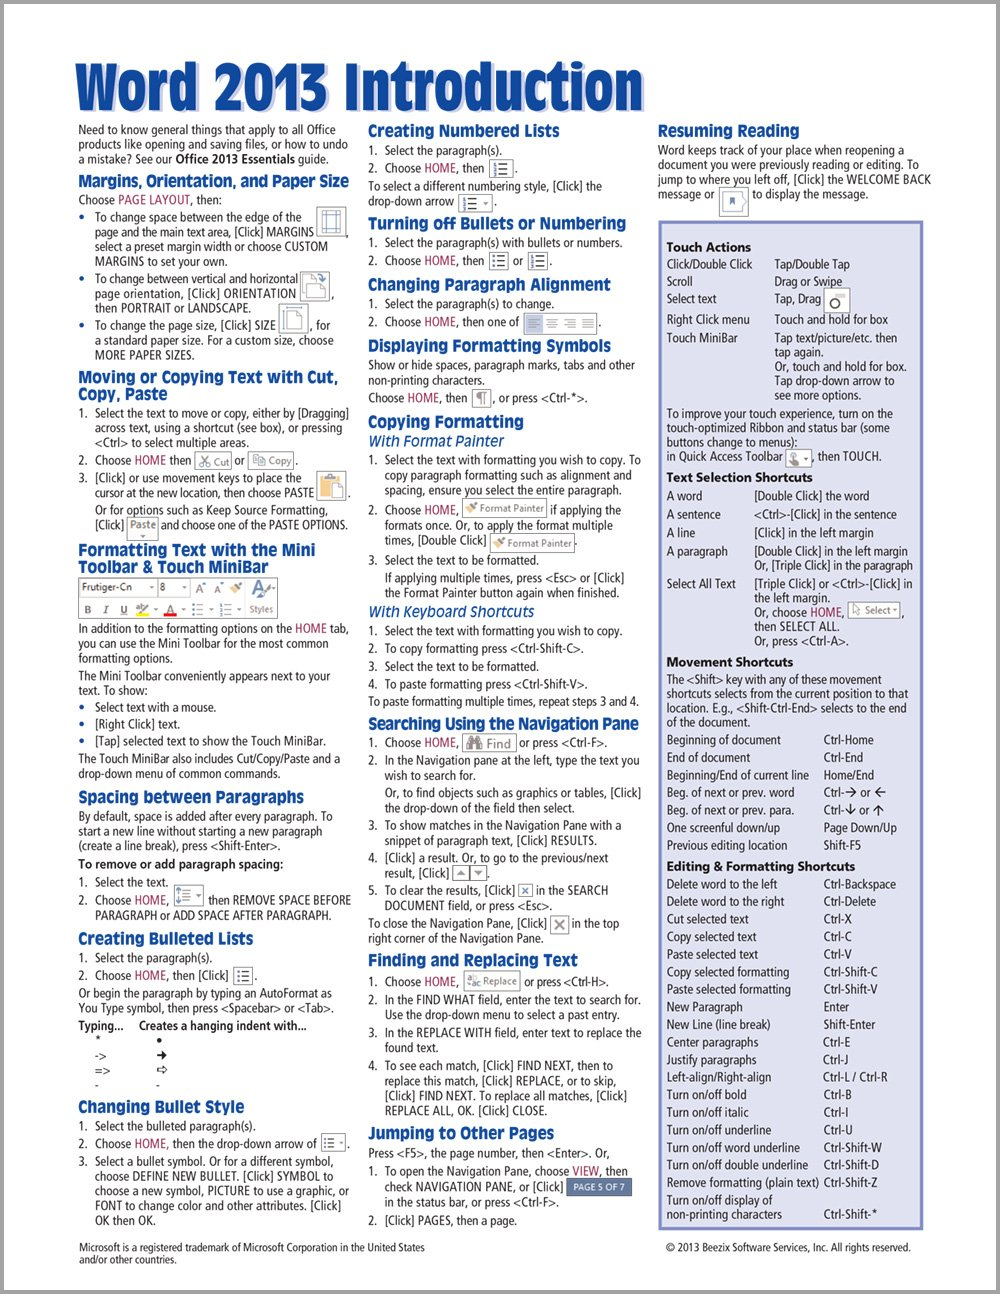 Microsoft Word 2013 Introduction Quick Reference Guide Cheat Sheet Of Instructions Tips Shortcuts